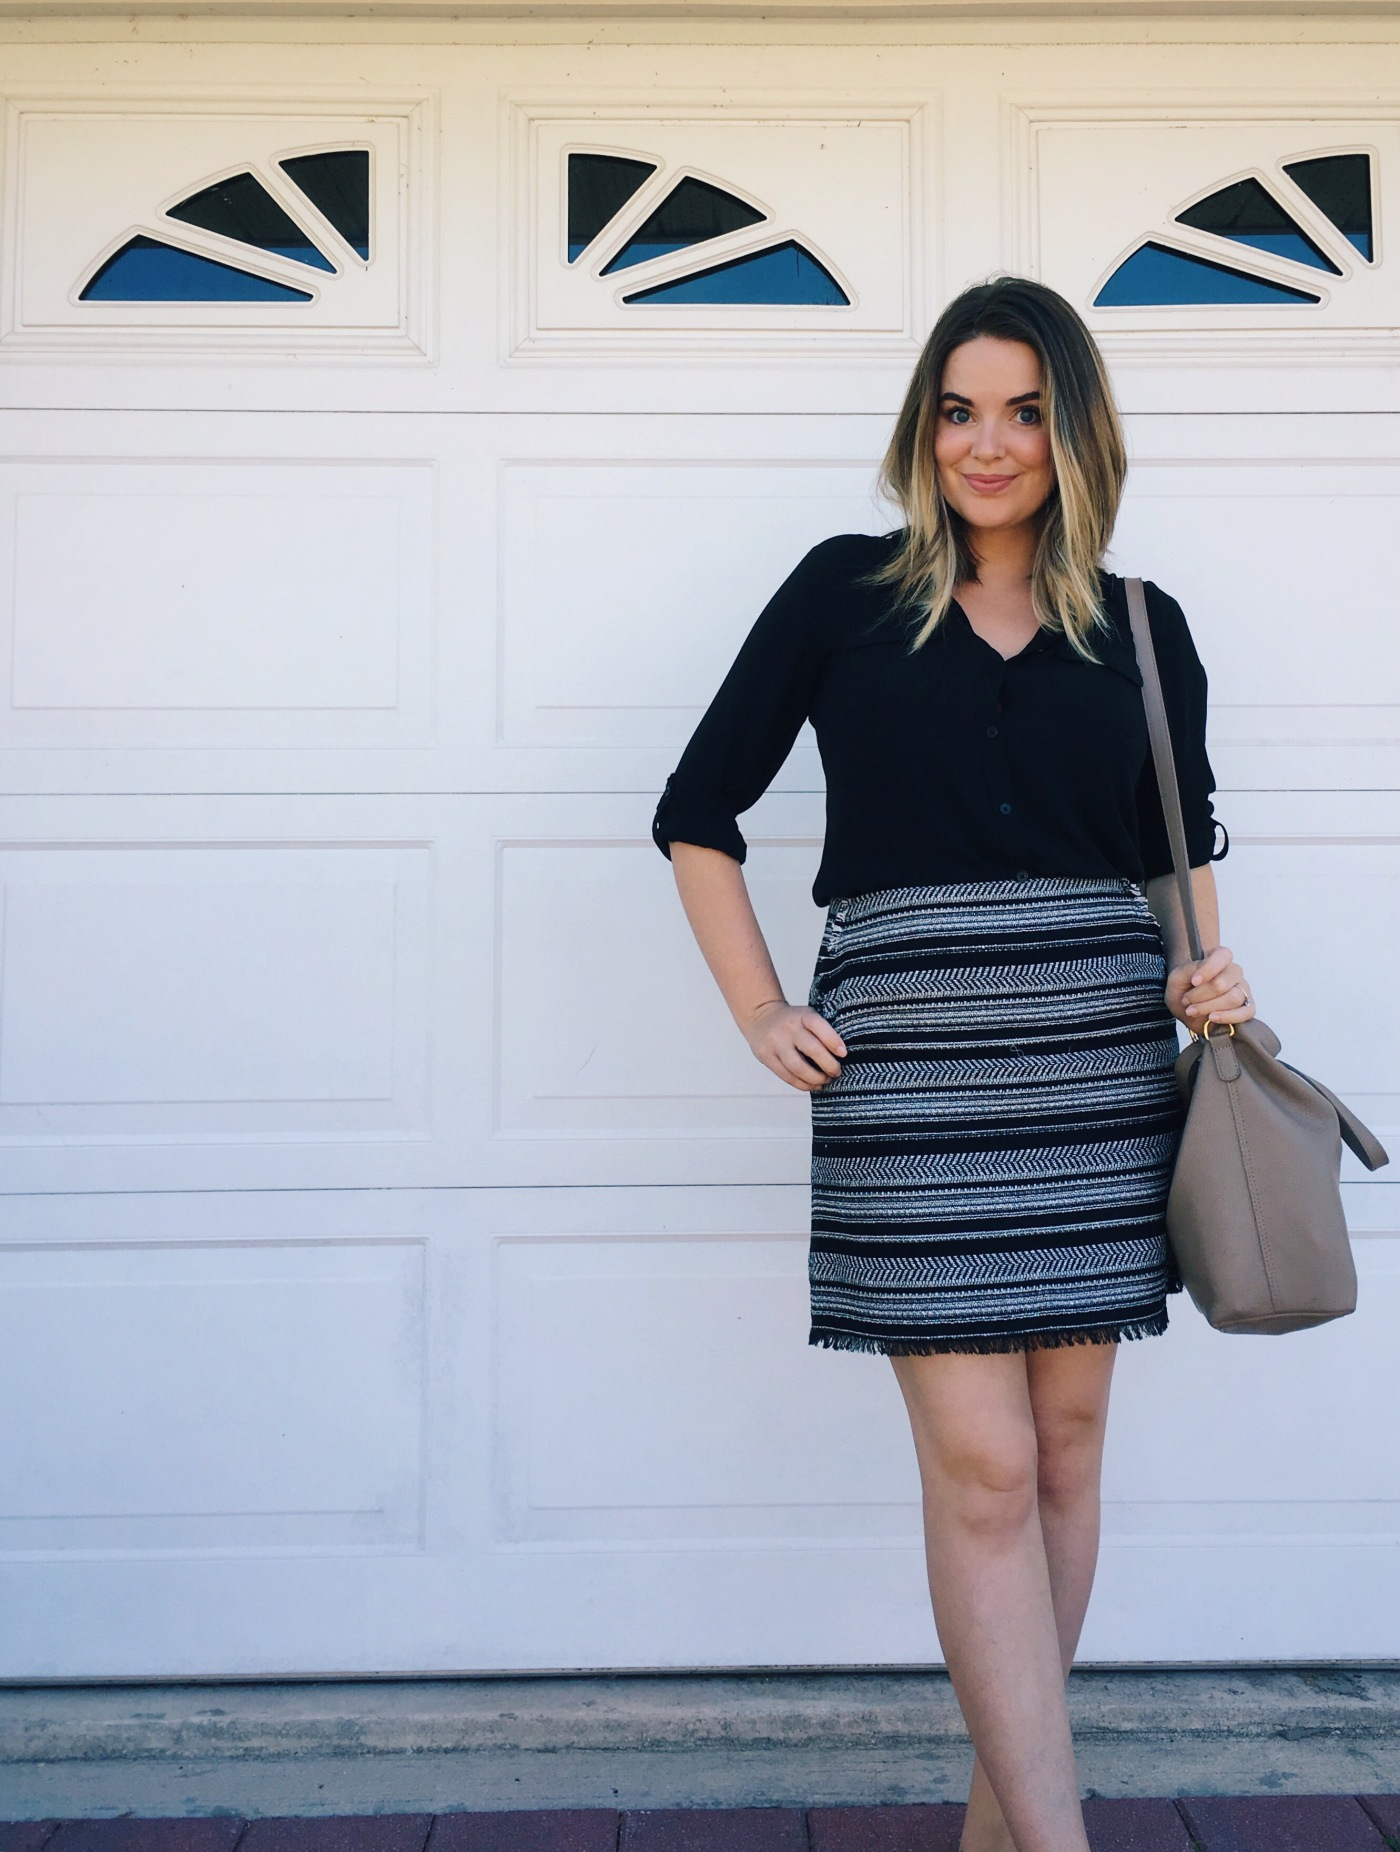 OOTD Tweed Mini Skirt, LOFT Utility Blouse, Cuyana Small Leather Carryall. Women's Fashion, Real-Life Style. keiralennox.com